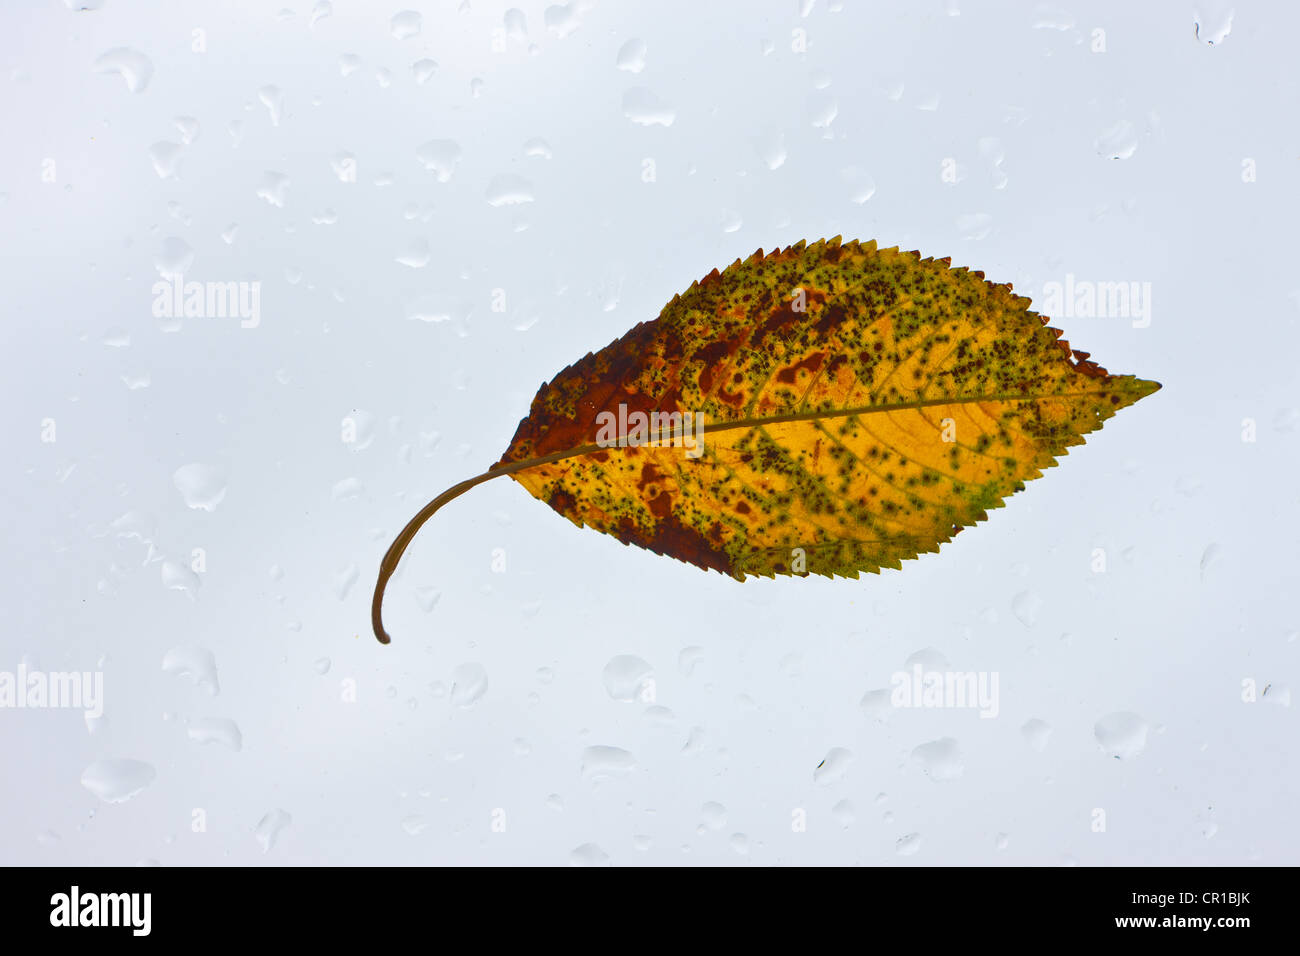 Autumn leaf on a glass pane with rain drops - Stock Image